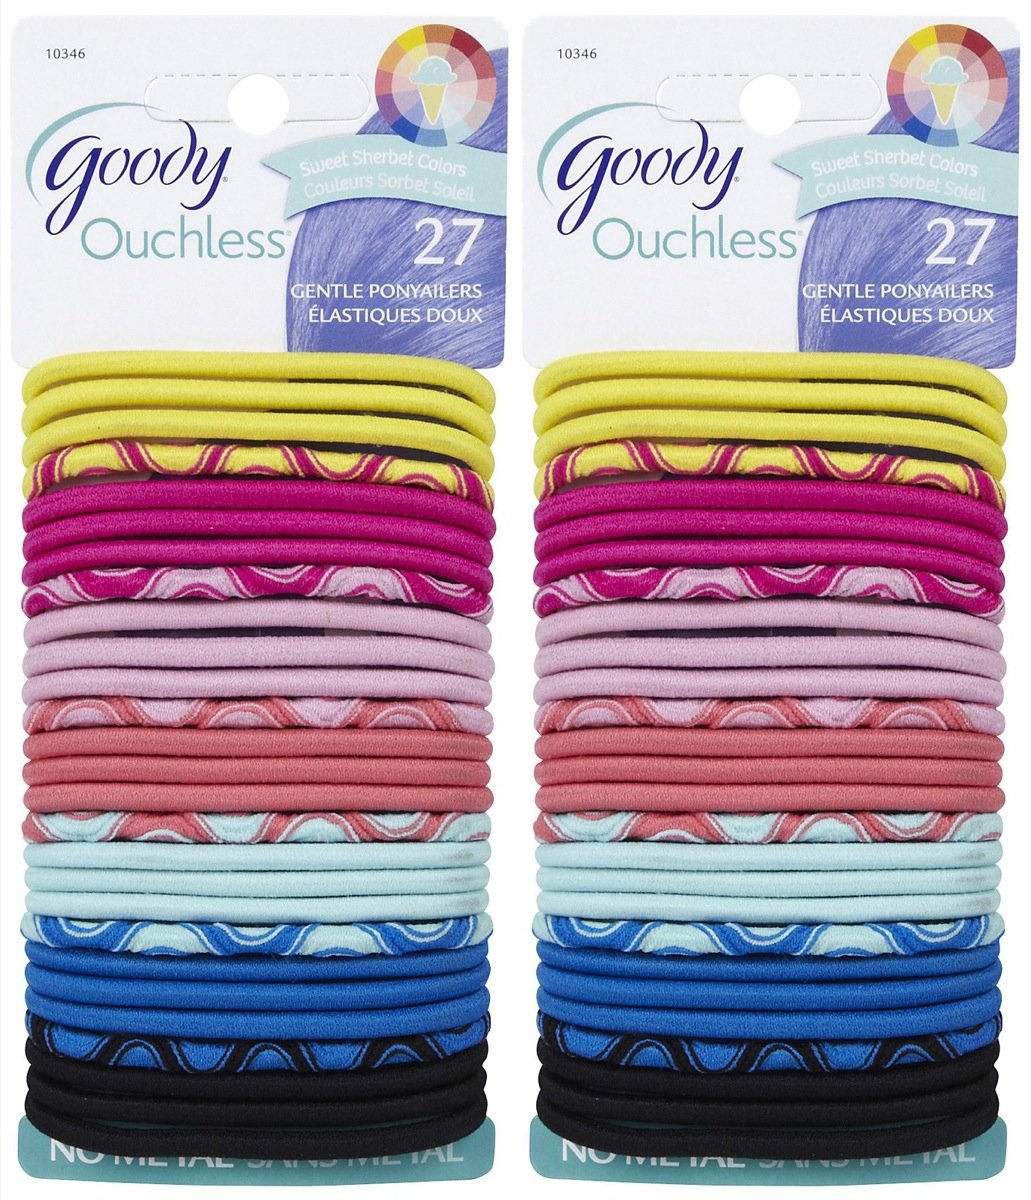 Goody Ouchless Elastics Stockholm